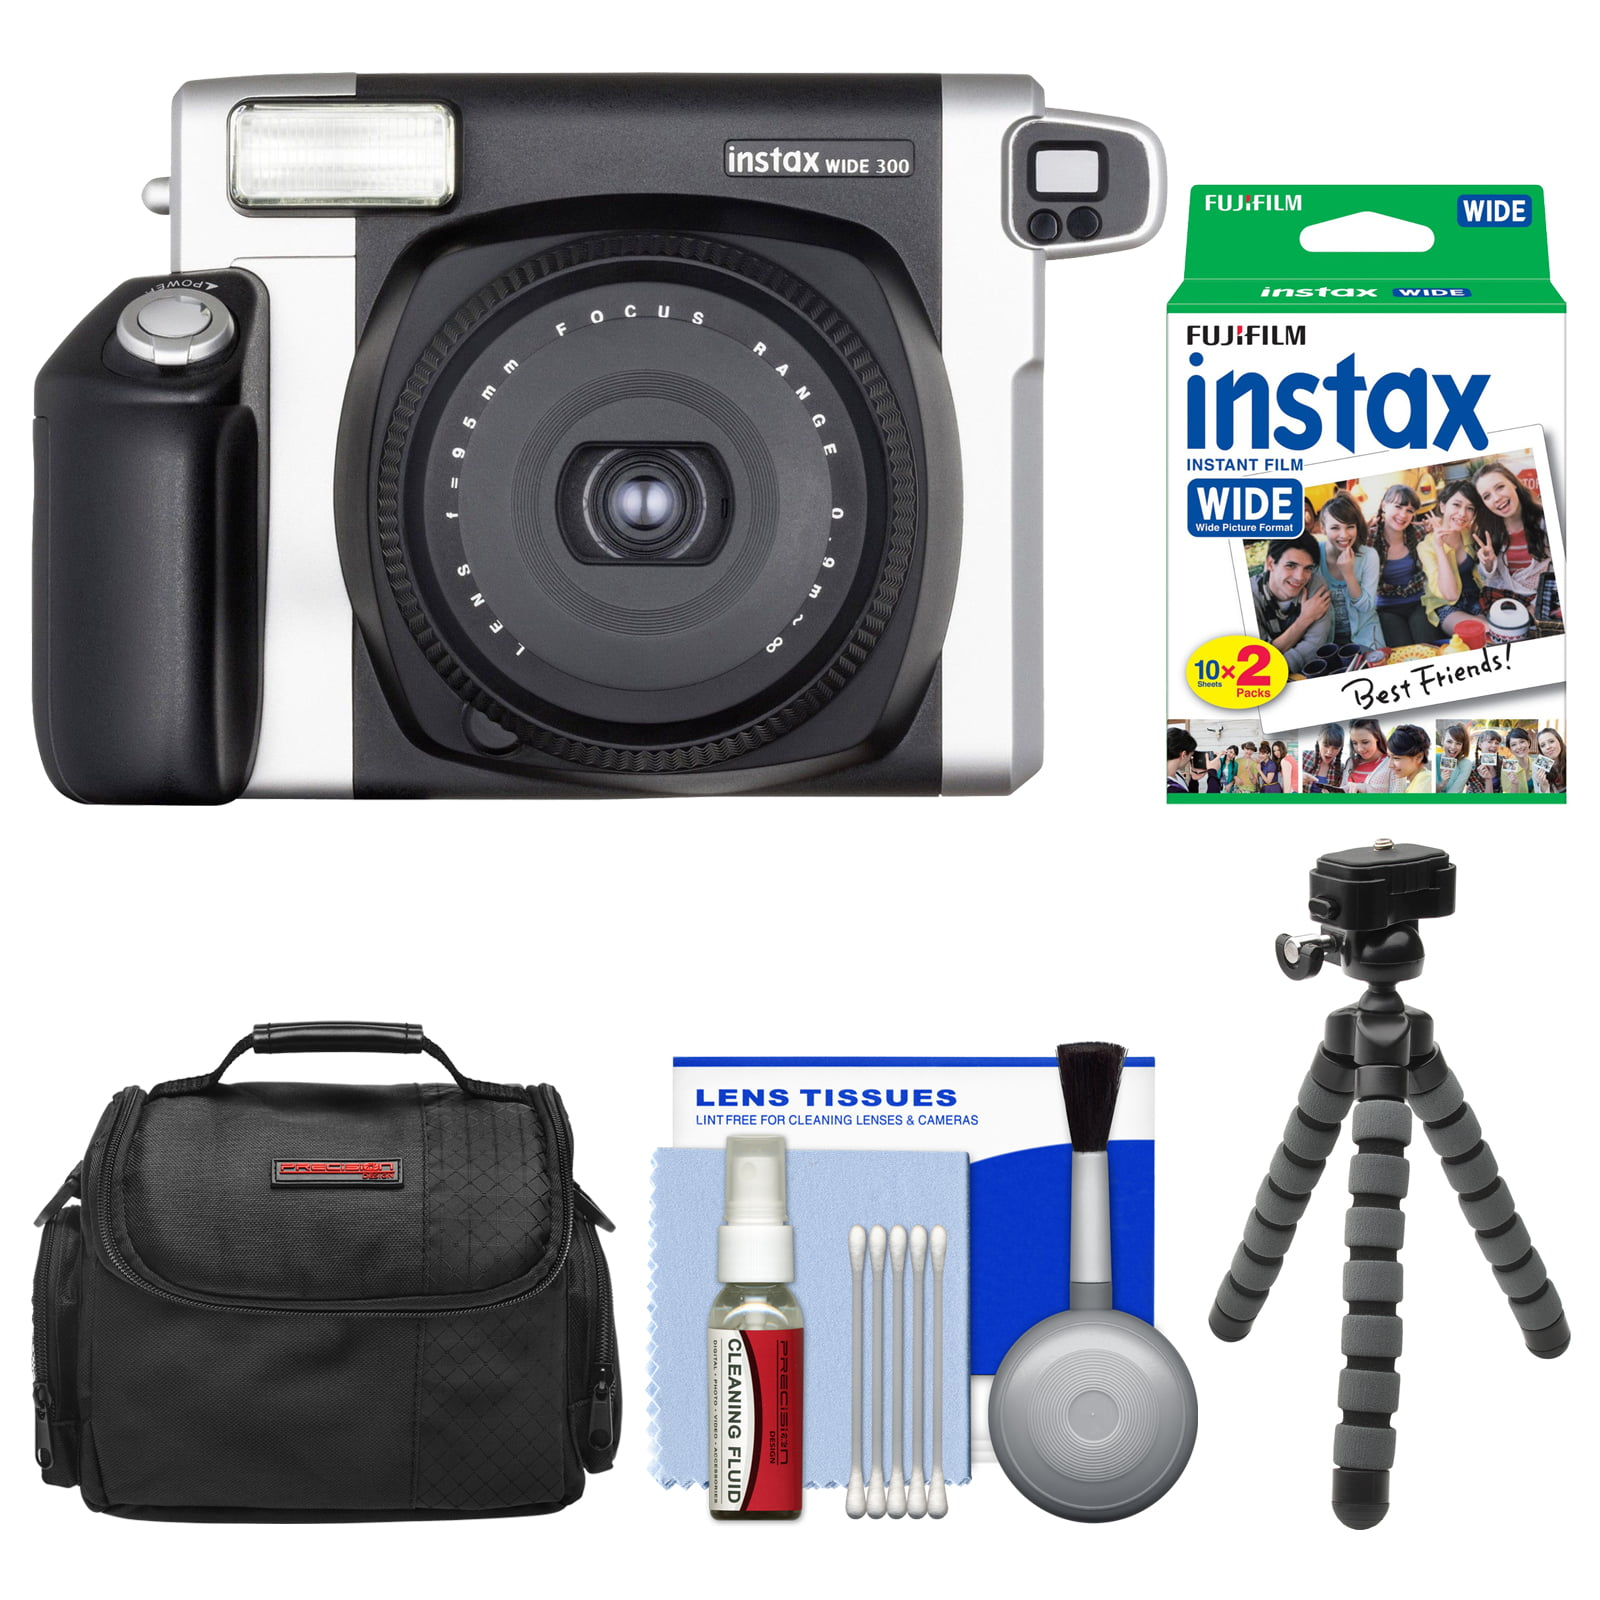 FujiFilm Instax Wide 300 Instant Film Camera with 20 Wide Twin Prints + Case + Flex Tripod + Kit by Fujifilm